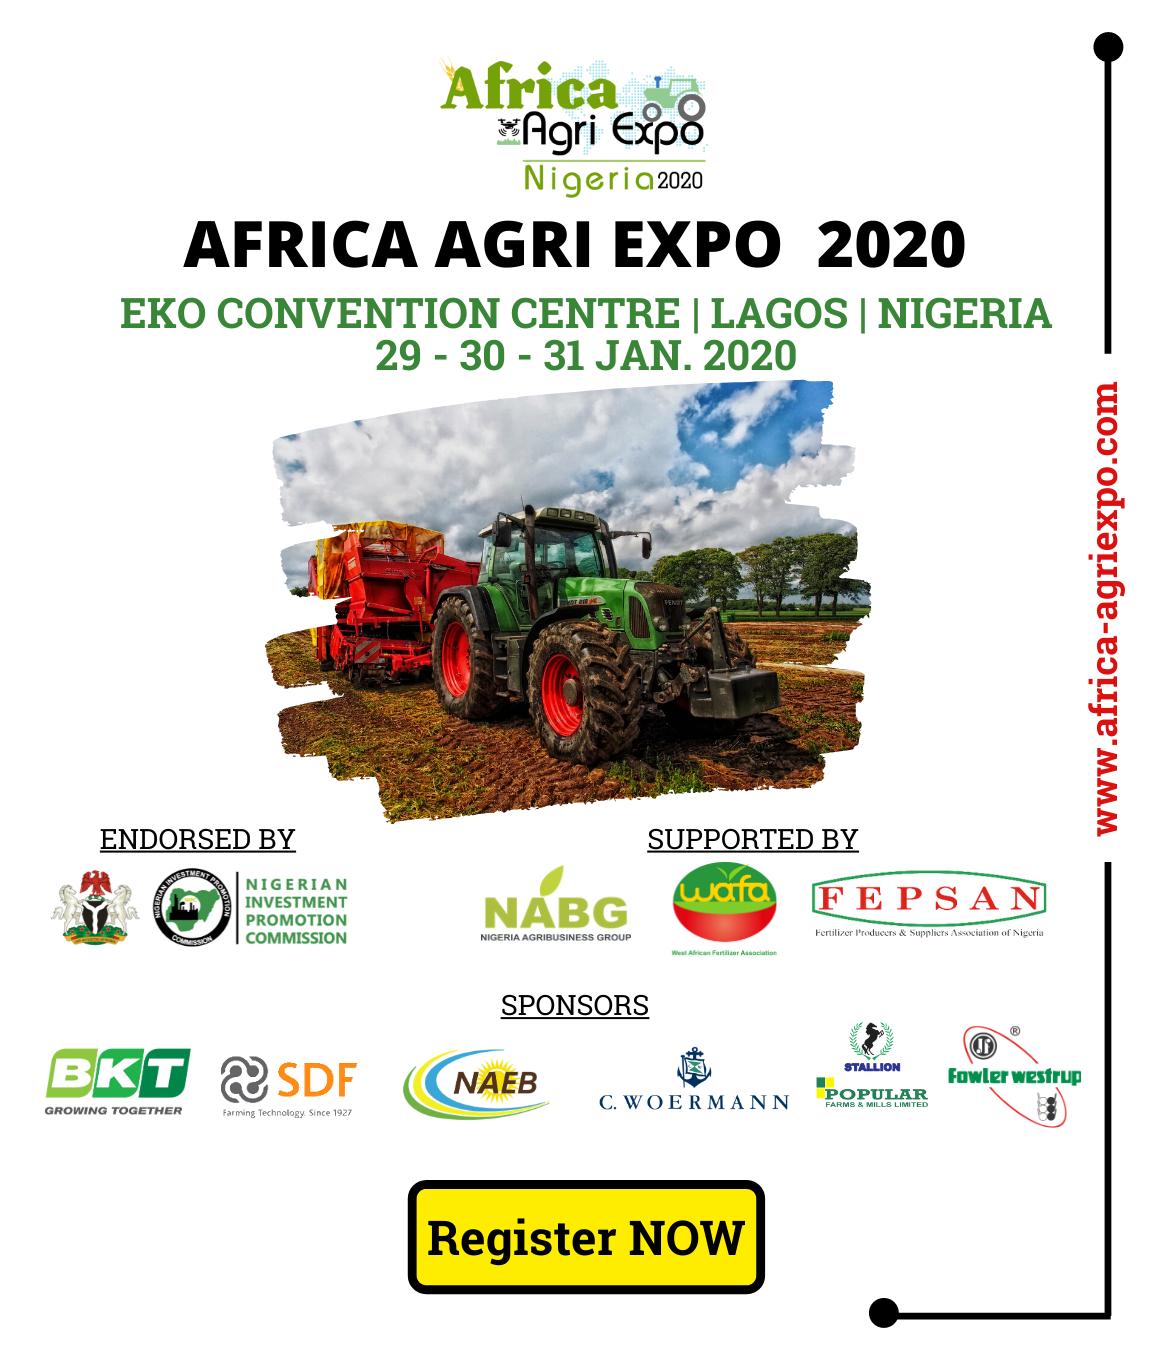 Africa Agri Expo 2020